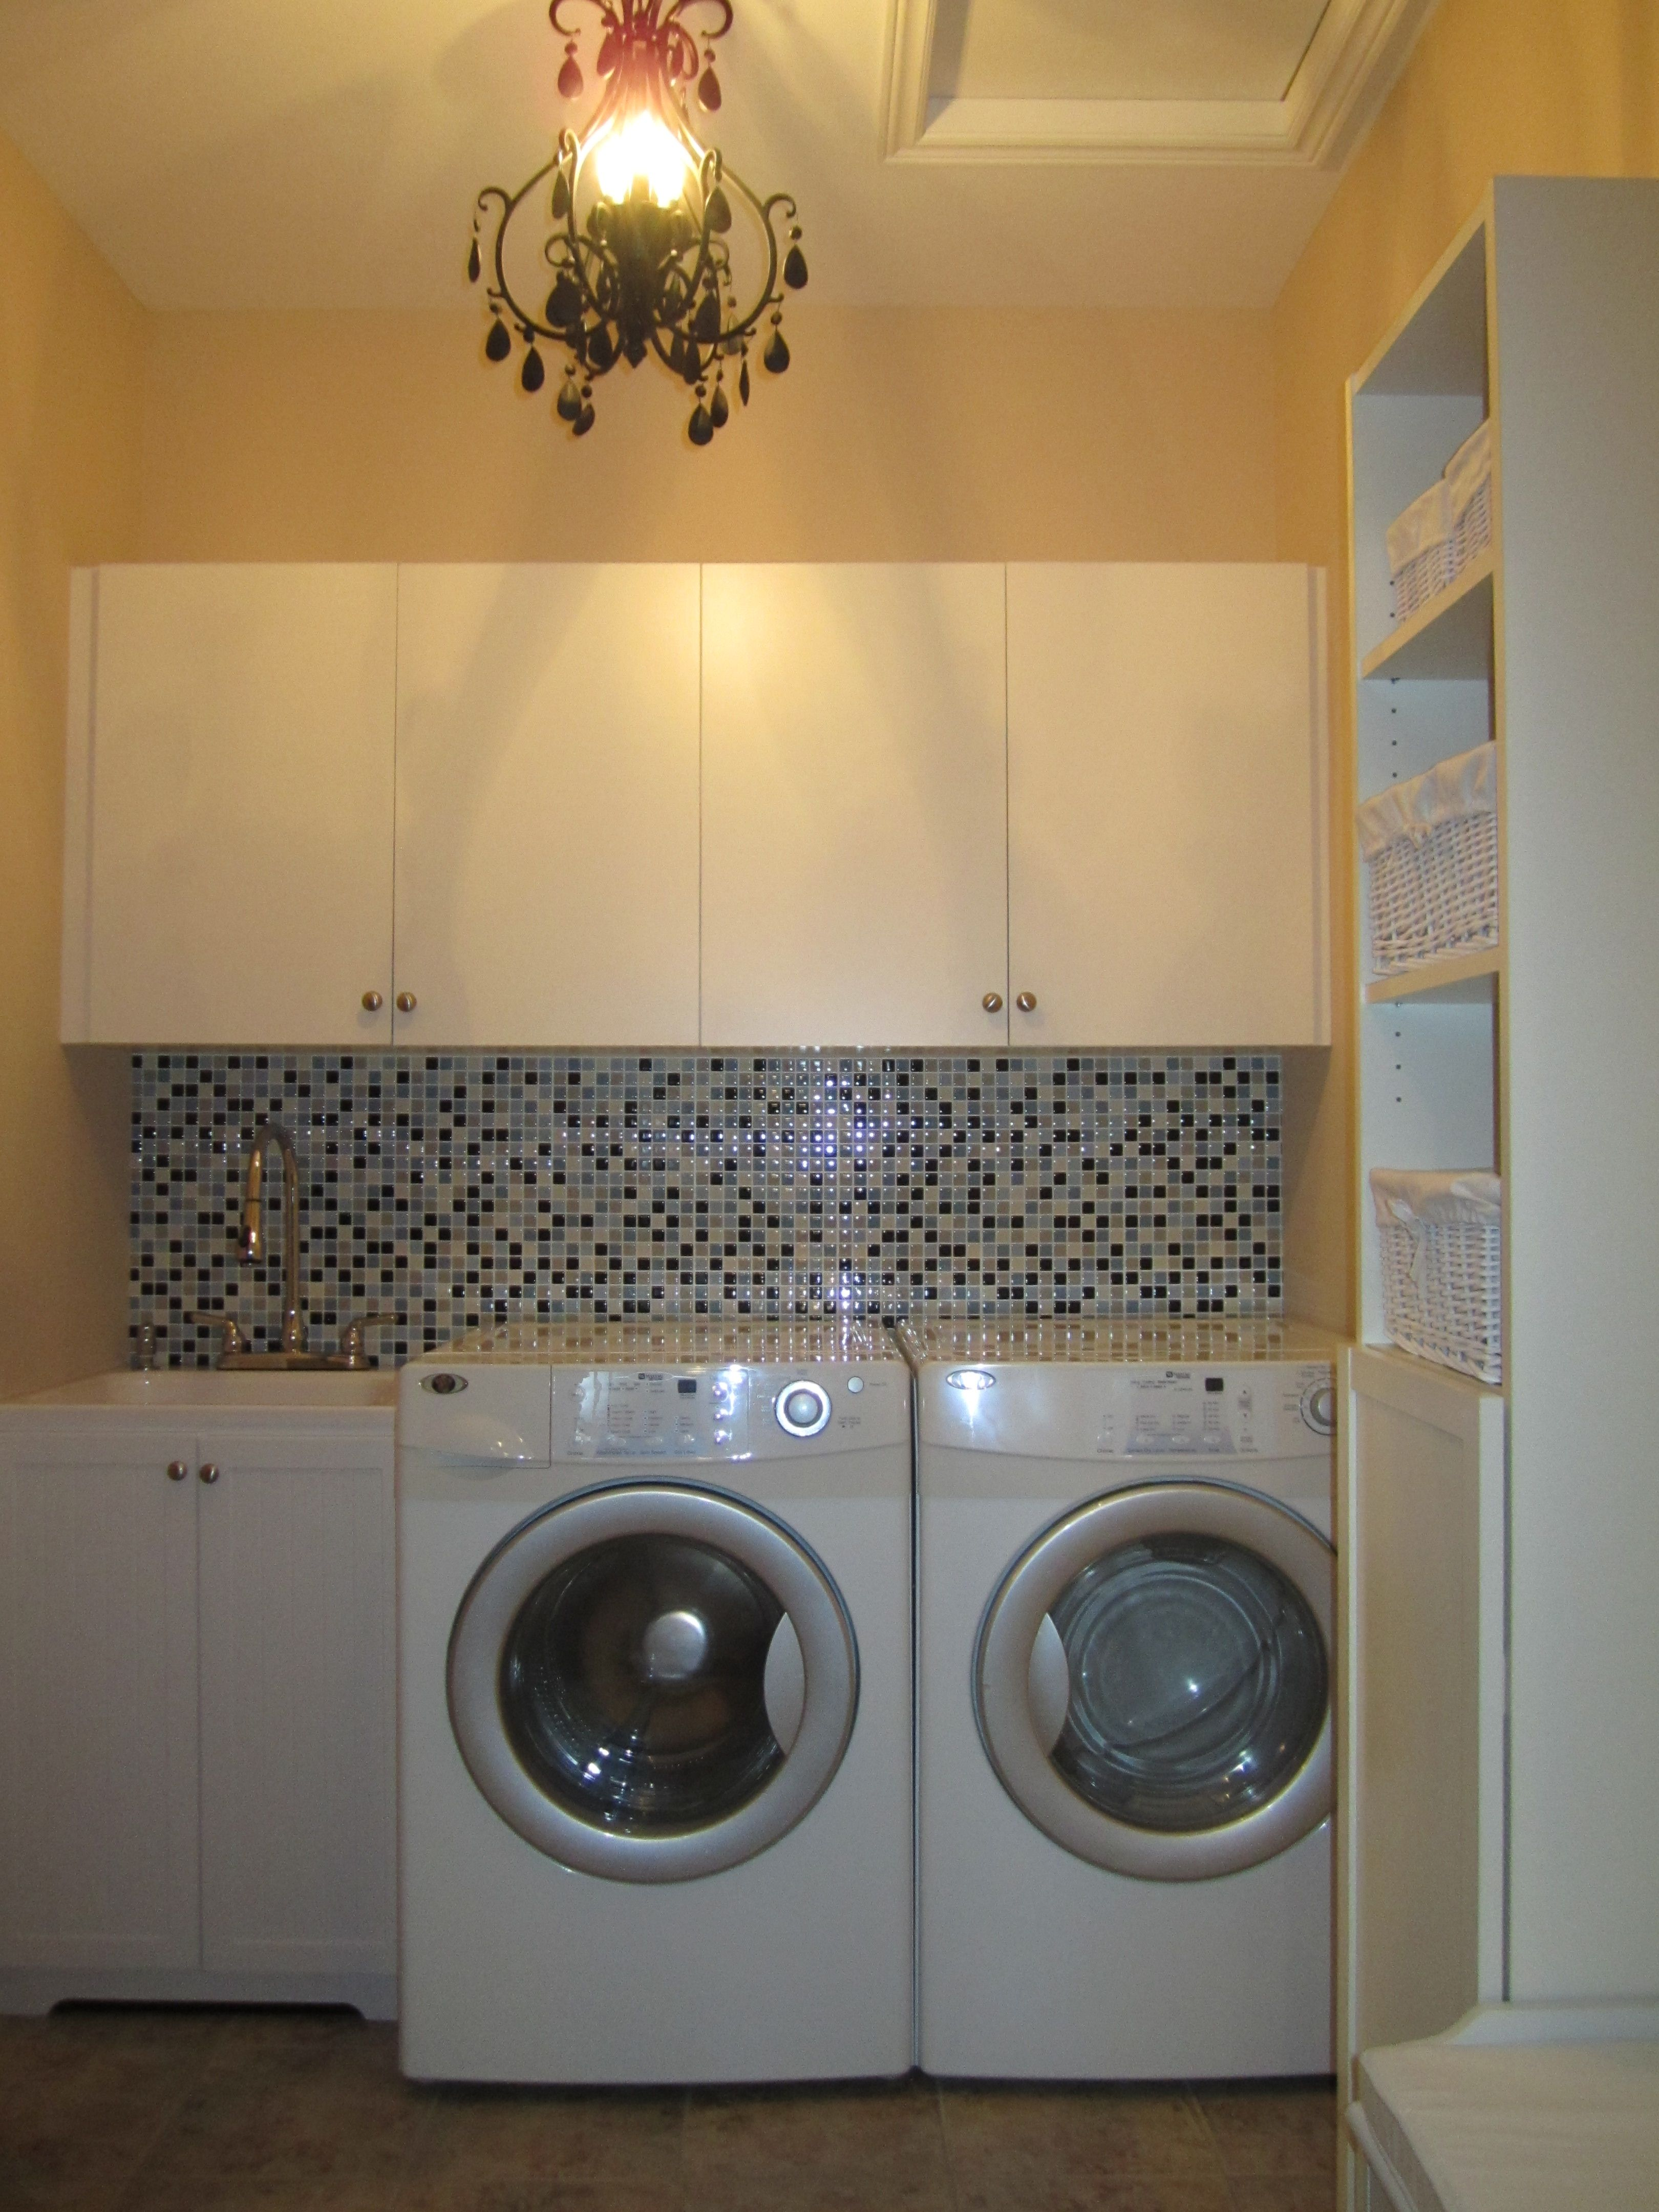 Decorative Laundry Items Diy Laundry Room Makeover Love The Tile Backsplash